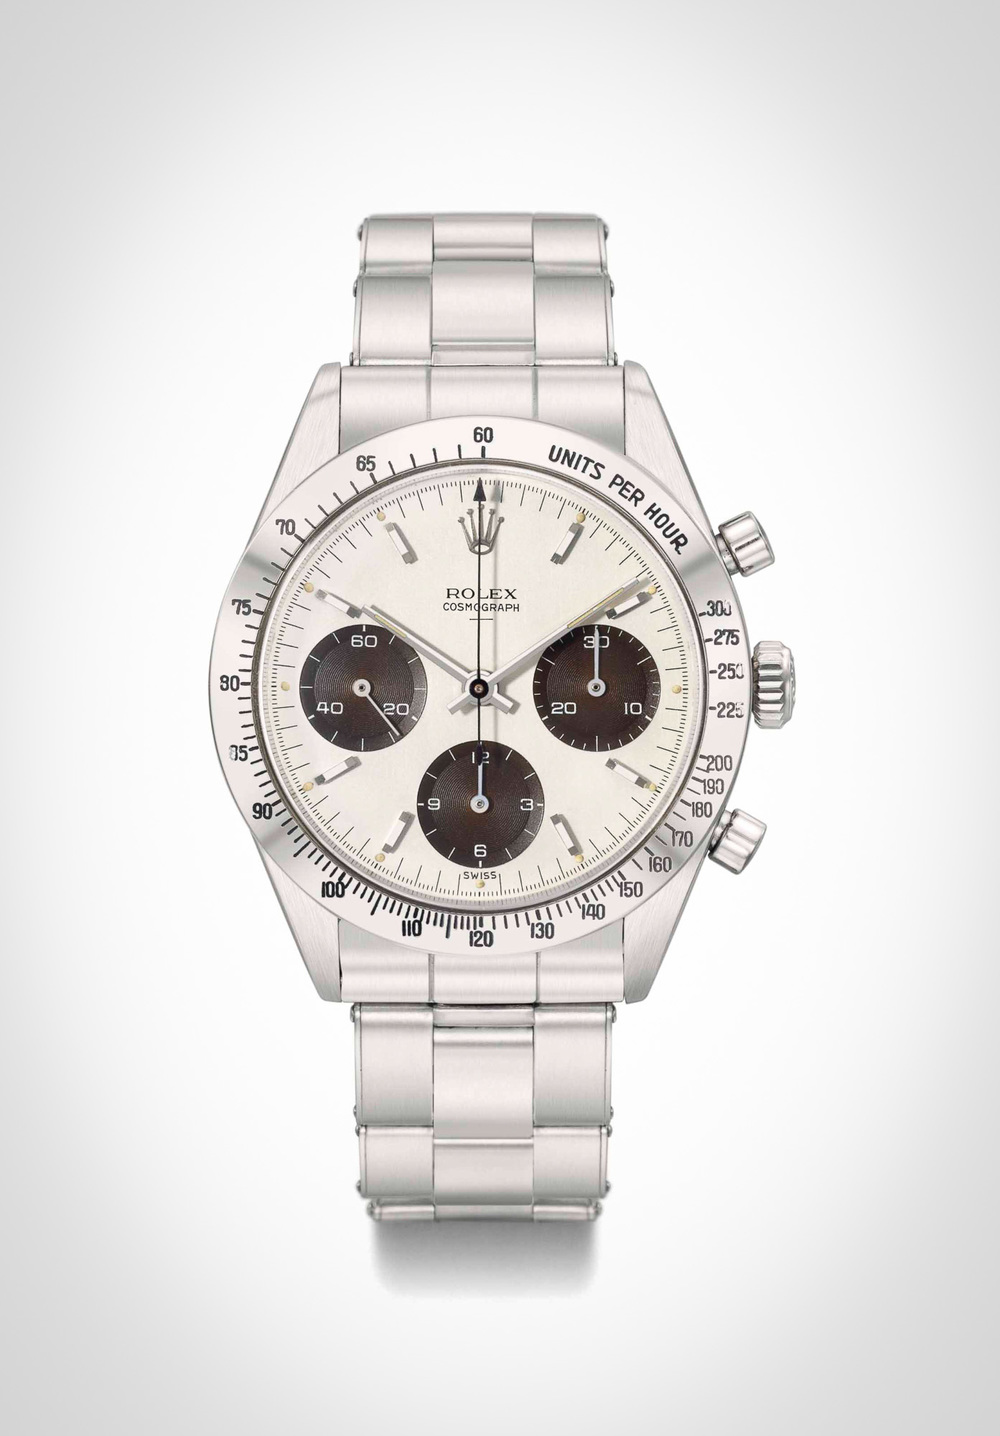 The very rare reference 6239 double-swiss underline Daytona, from the first year of production only.